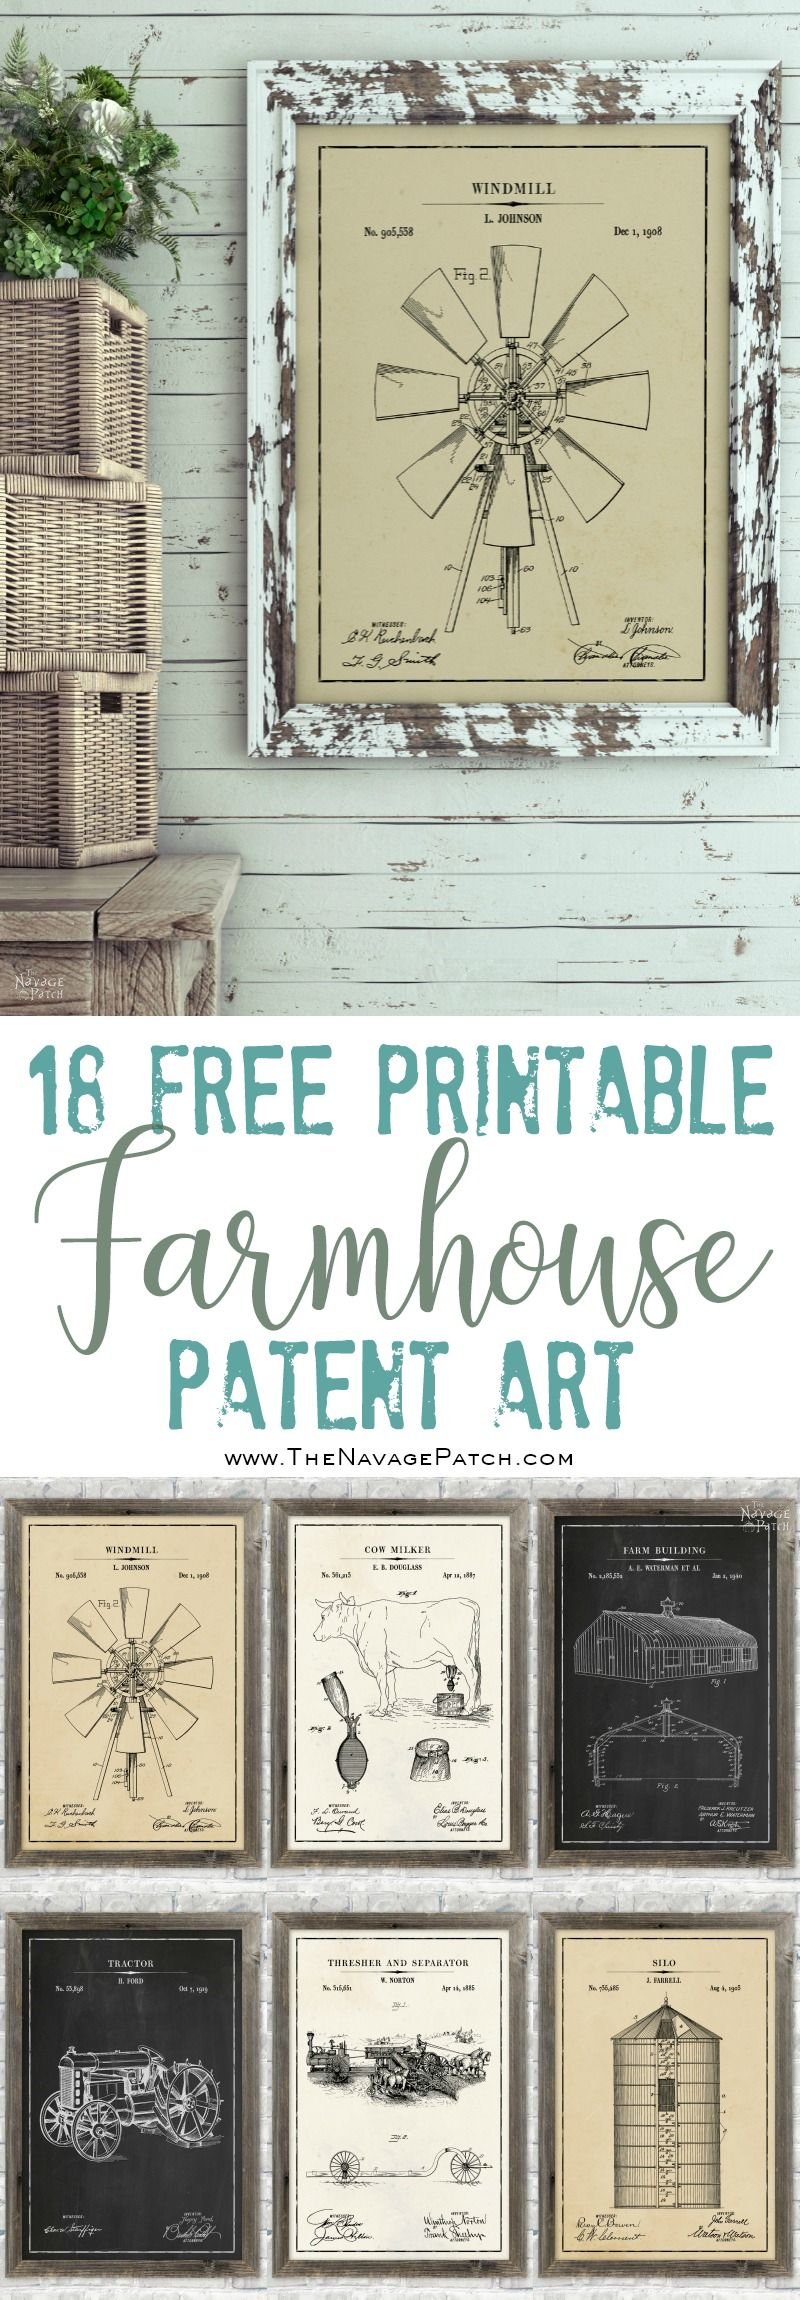 Farmhouse Patent Art (and Surprise Bonus Printables) pinterest image